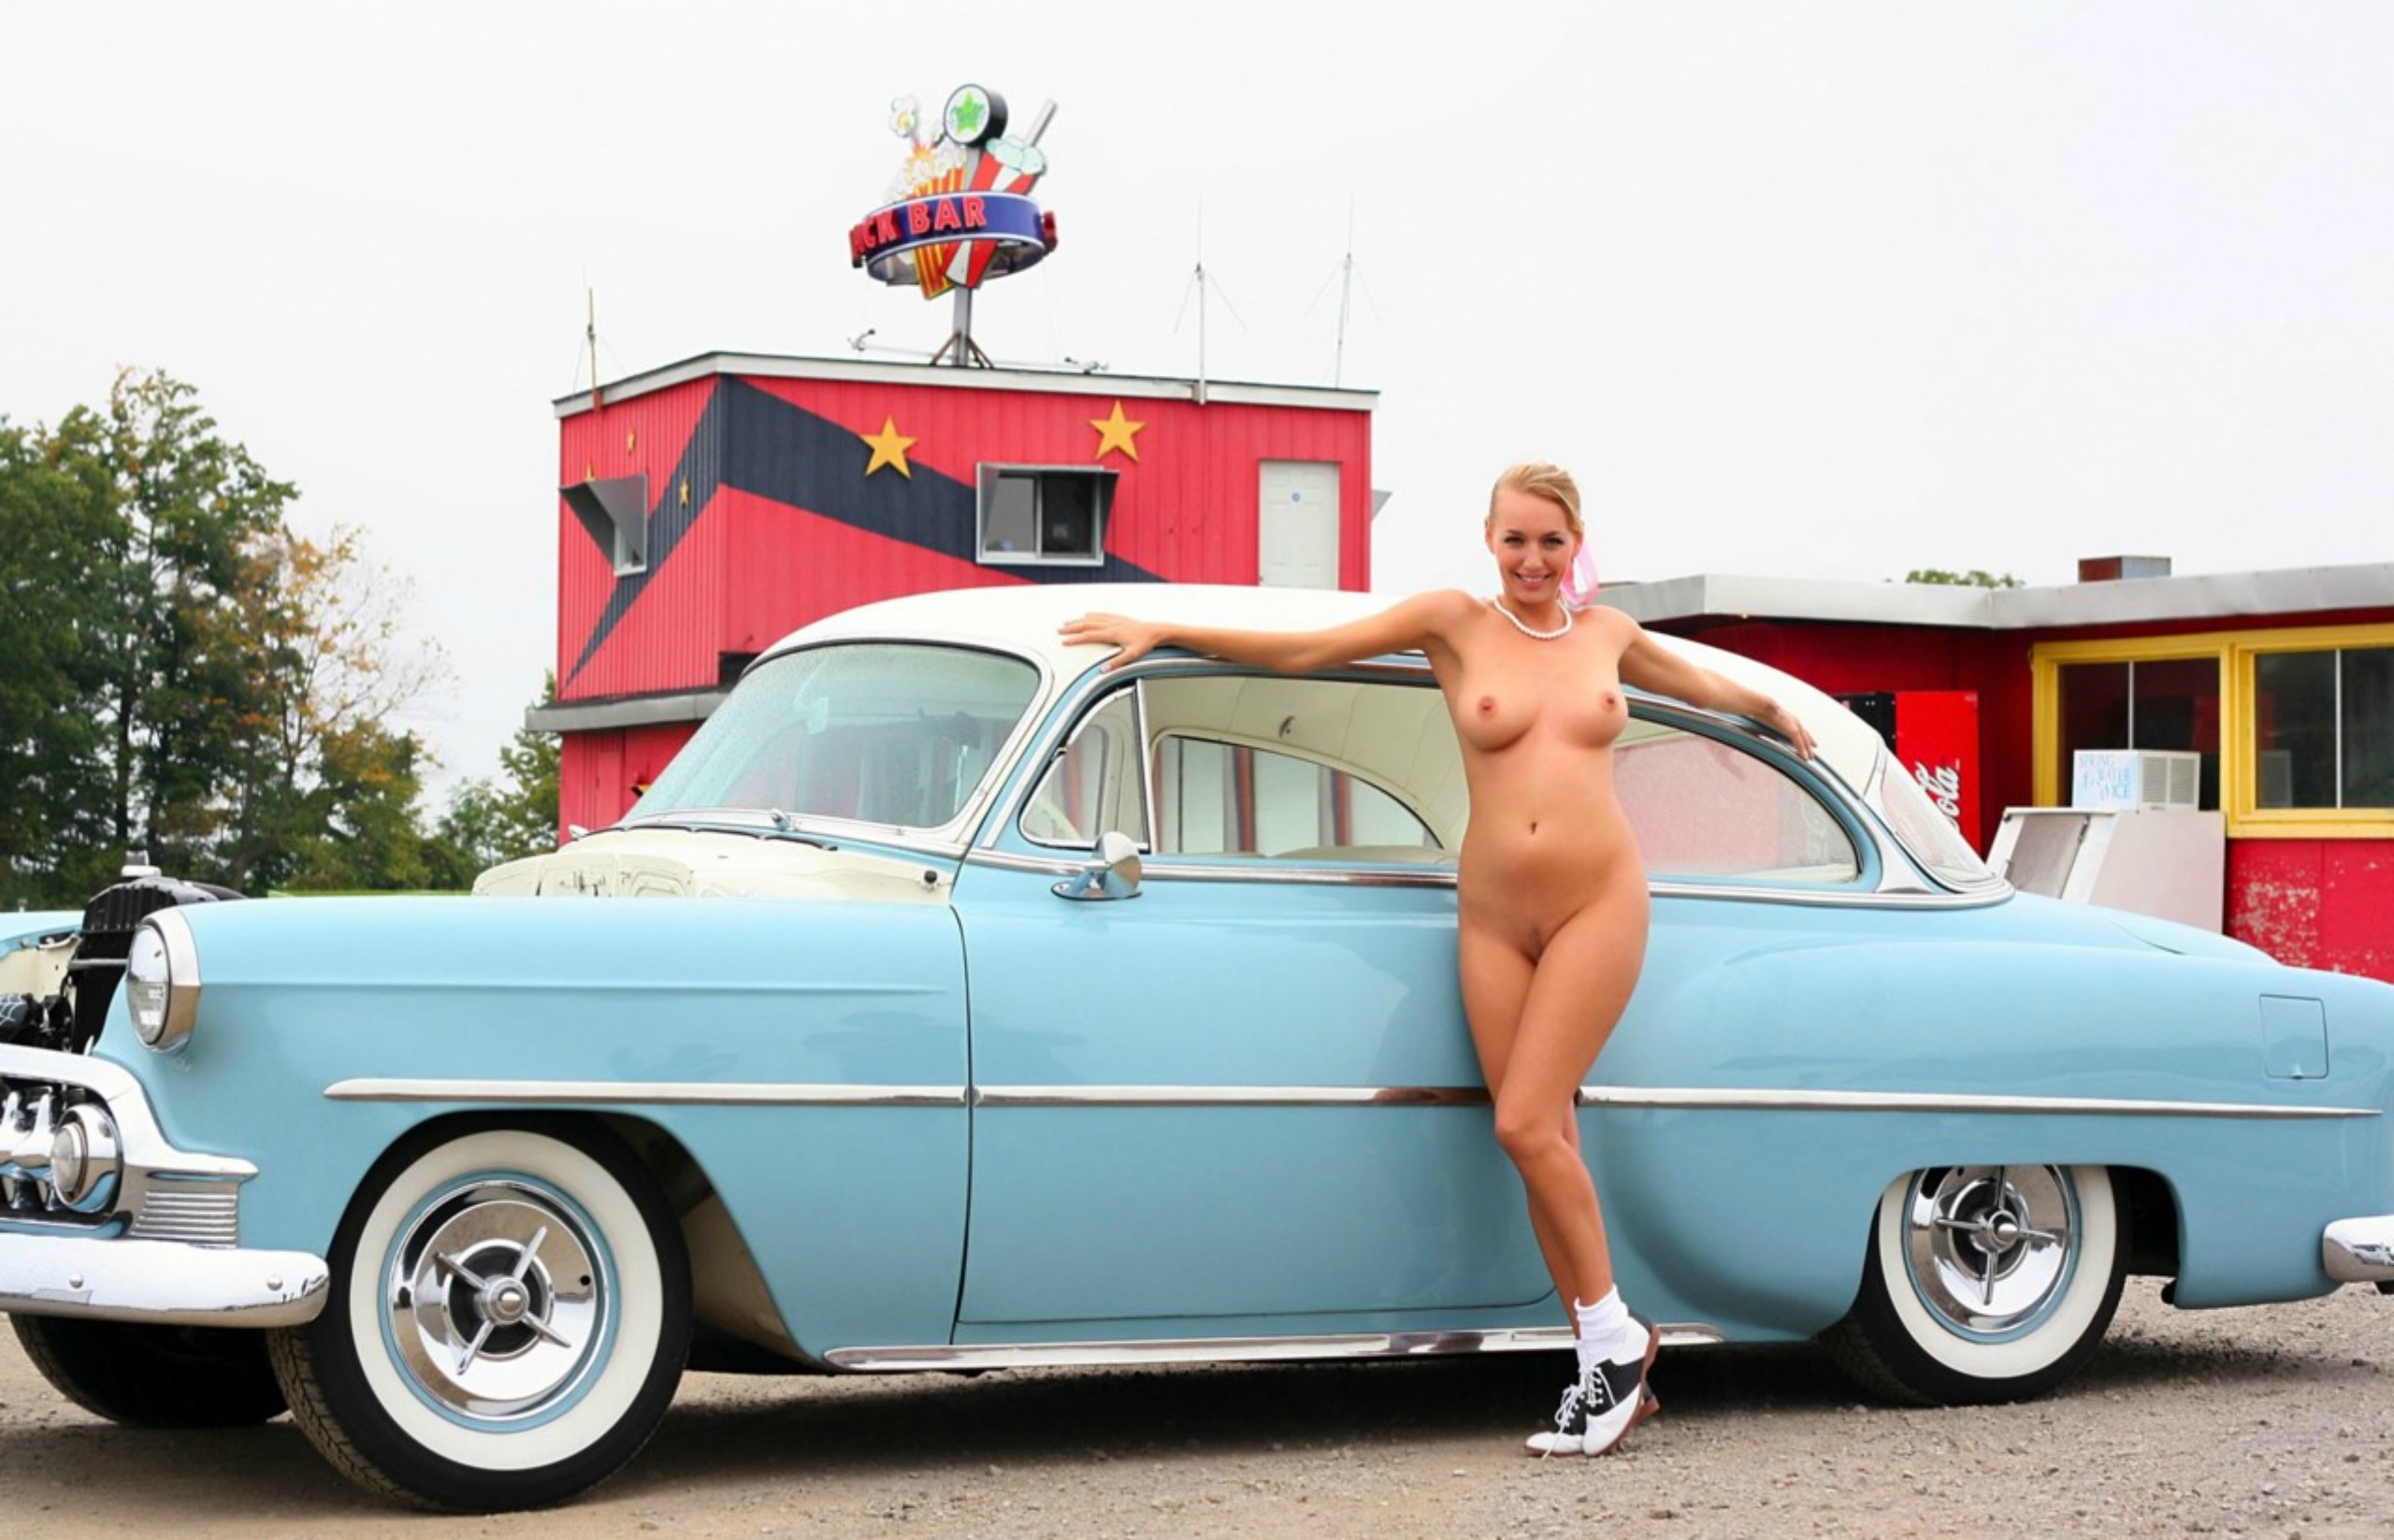 And girls cars classic nude